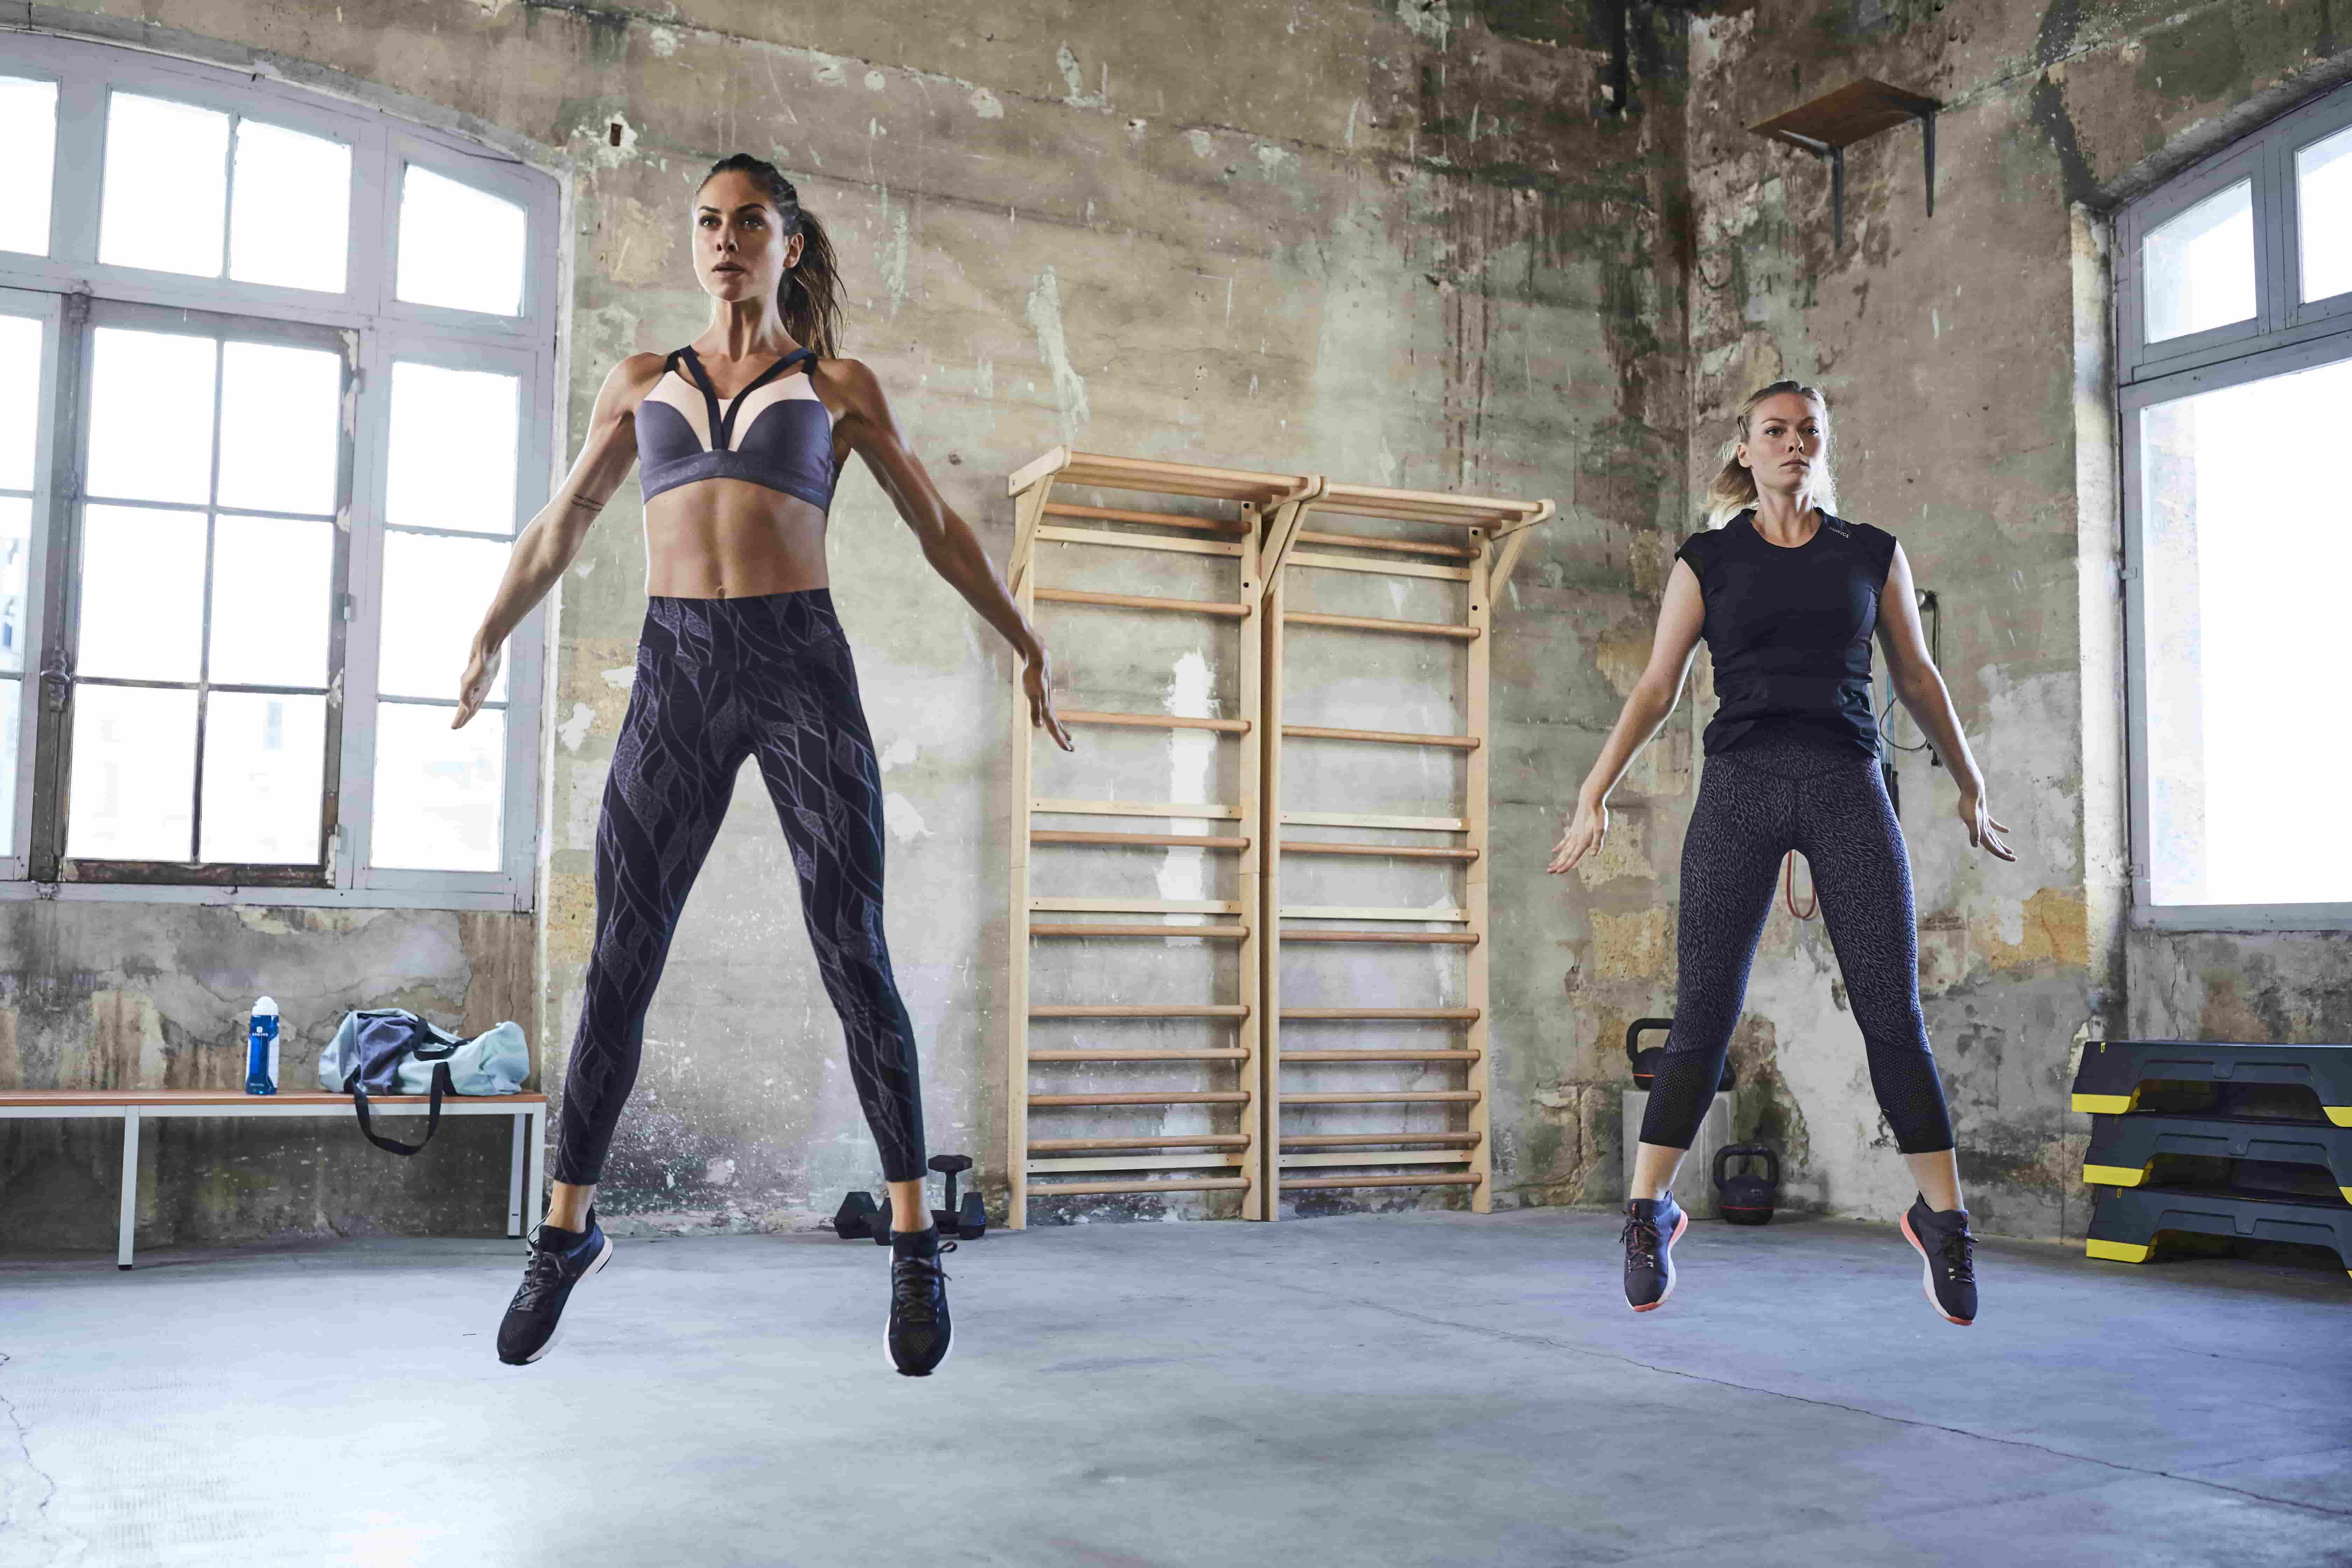 Jumping Jacks : How To Do And Its Benefits   Blog Decathlon